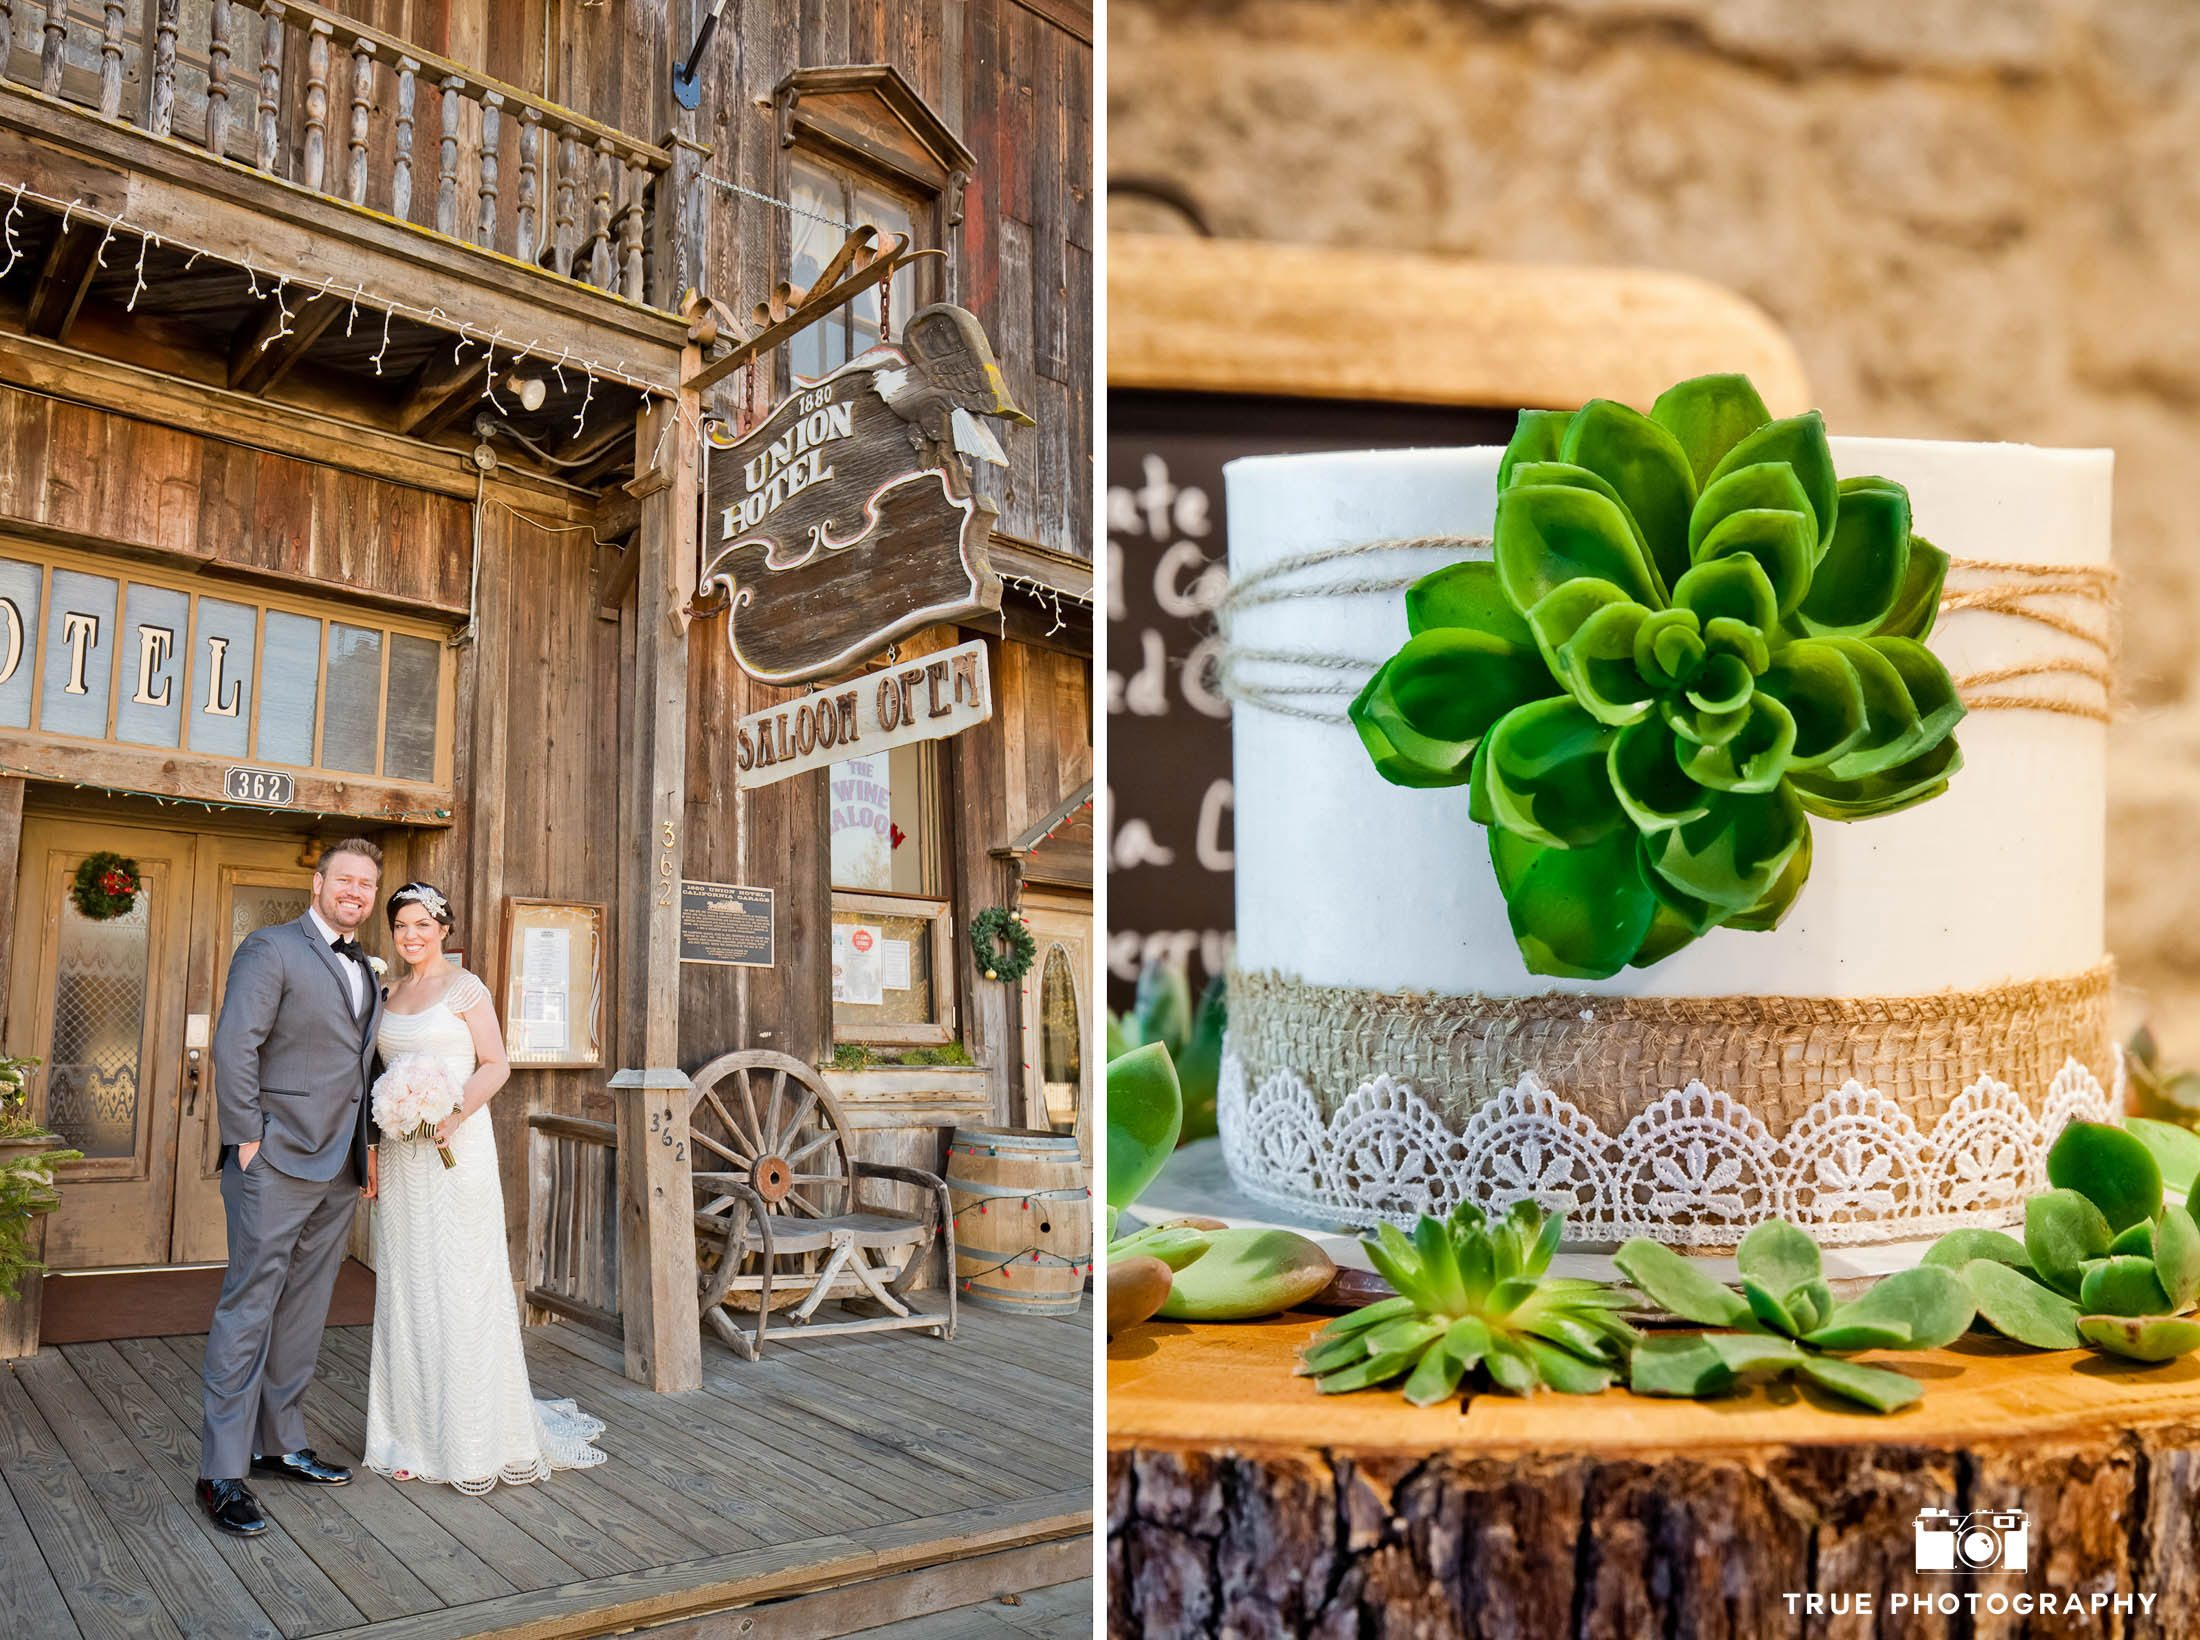 Rustic inspired wedding with aloe vera cake